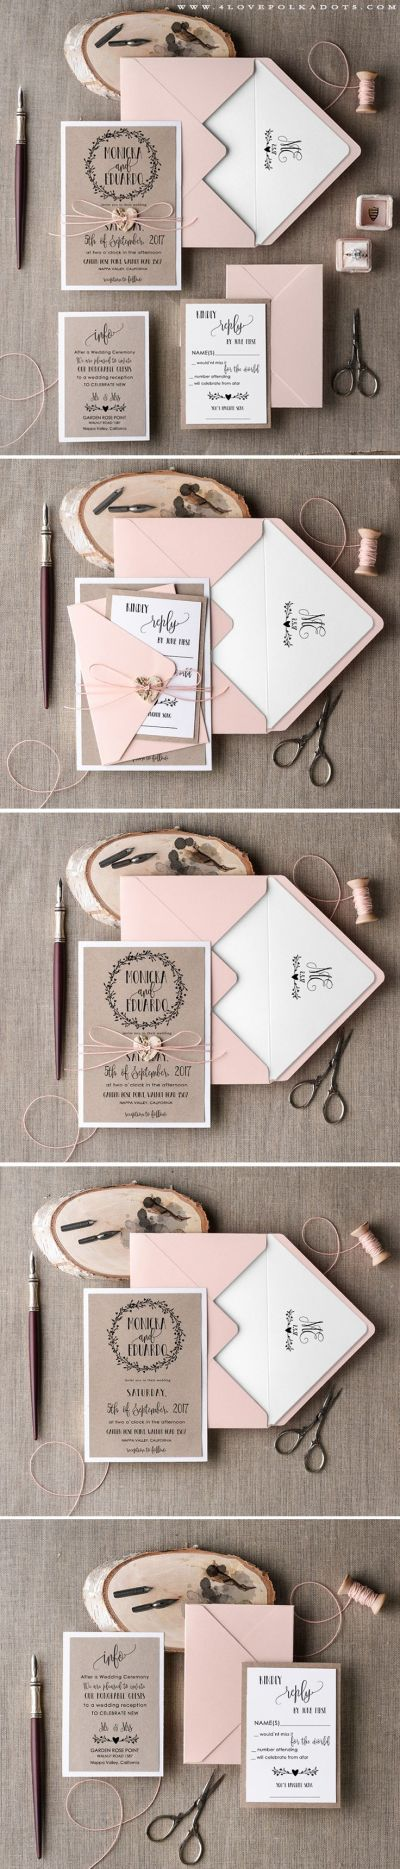 25+ Best Ideas about Handmade Wedding Invitations on ...